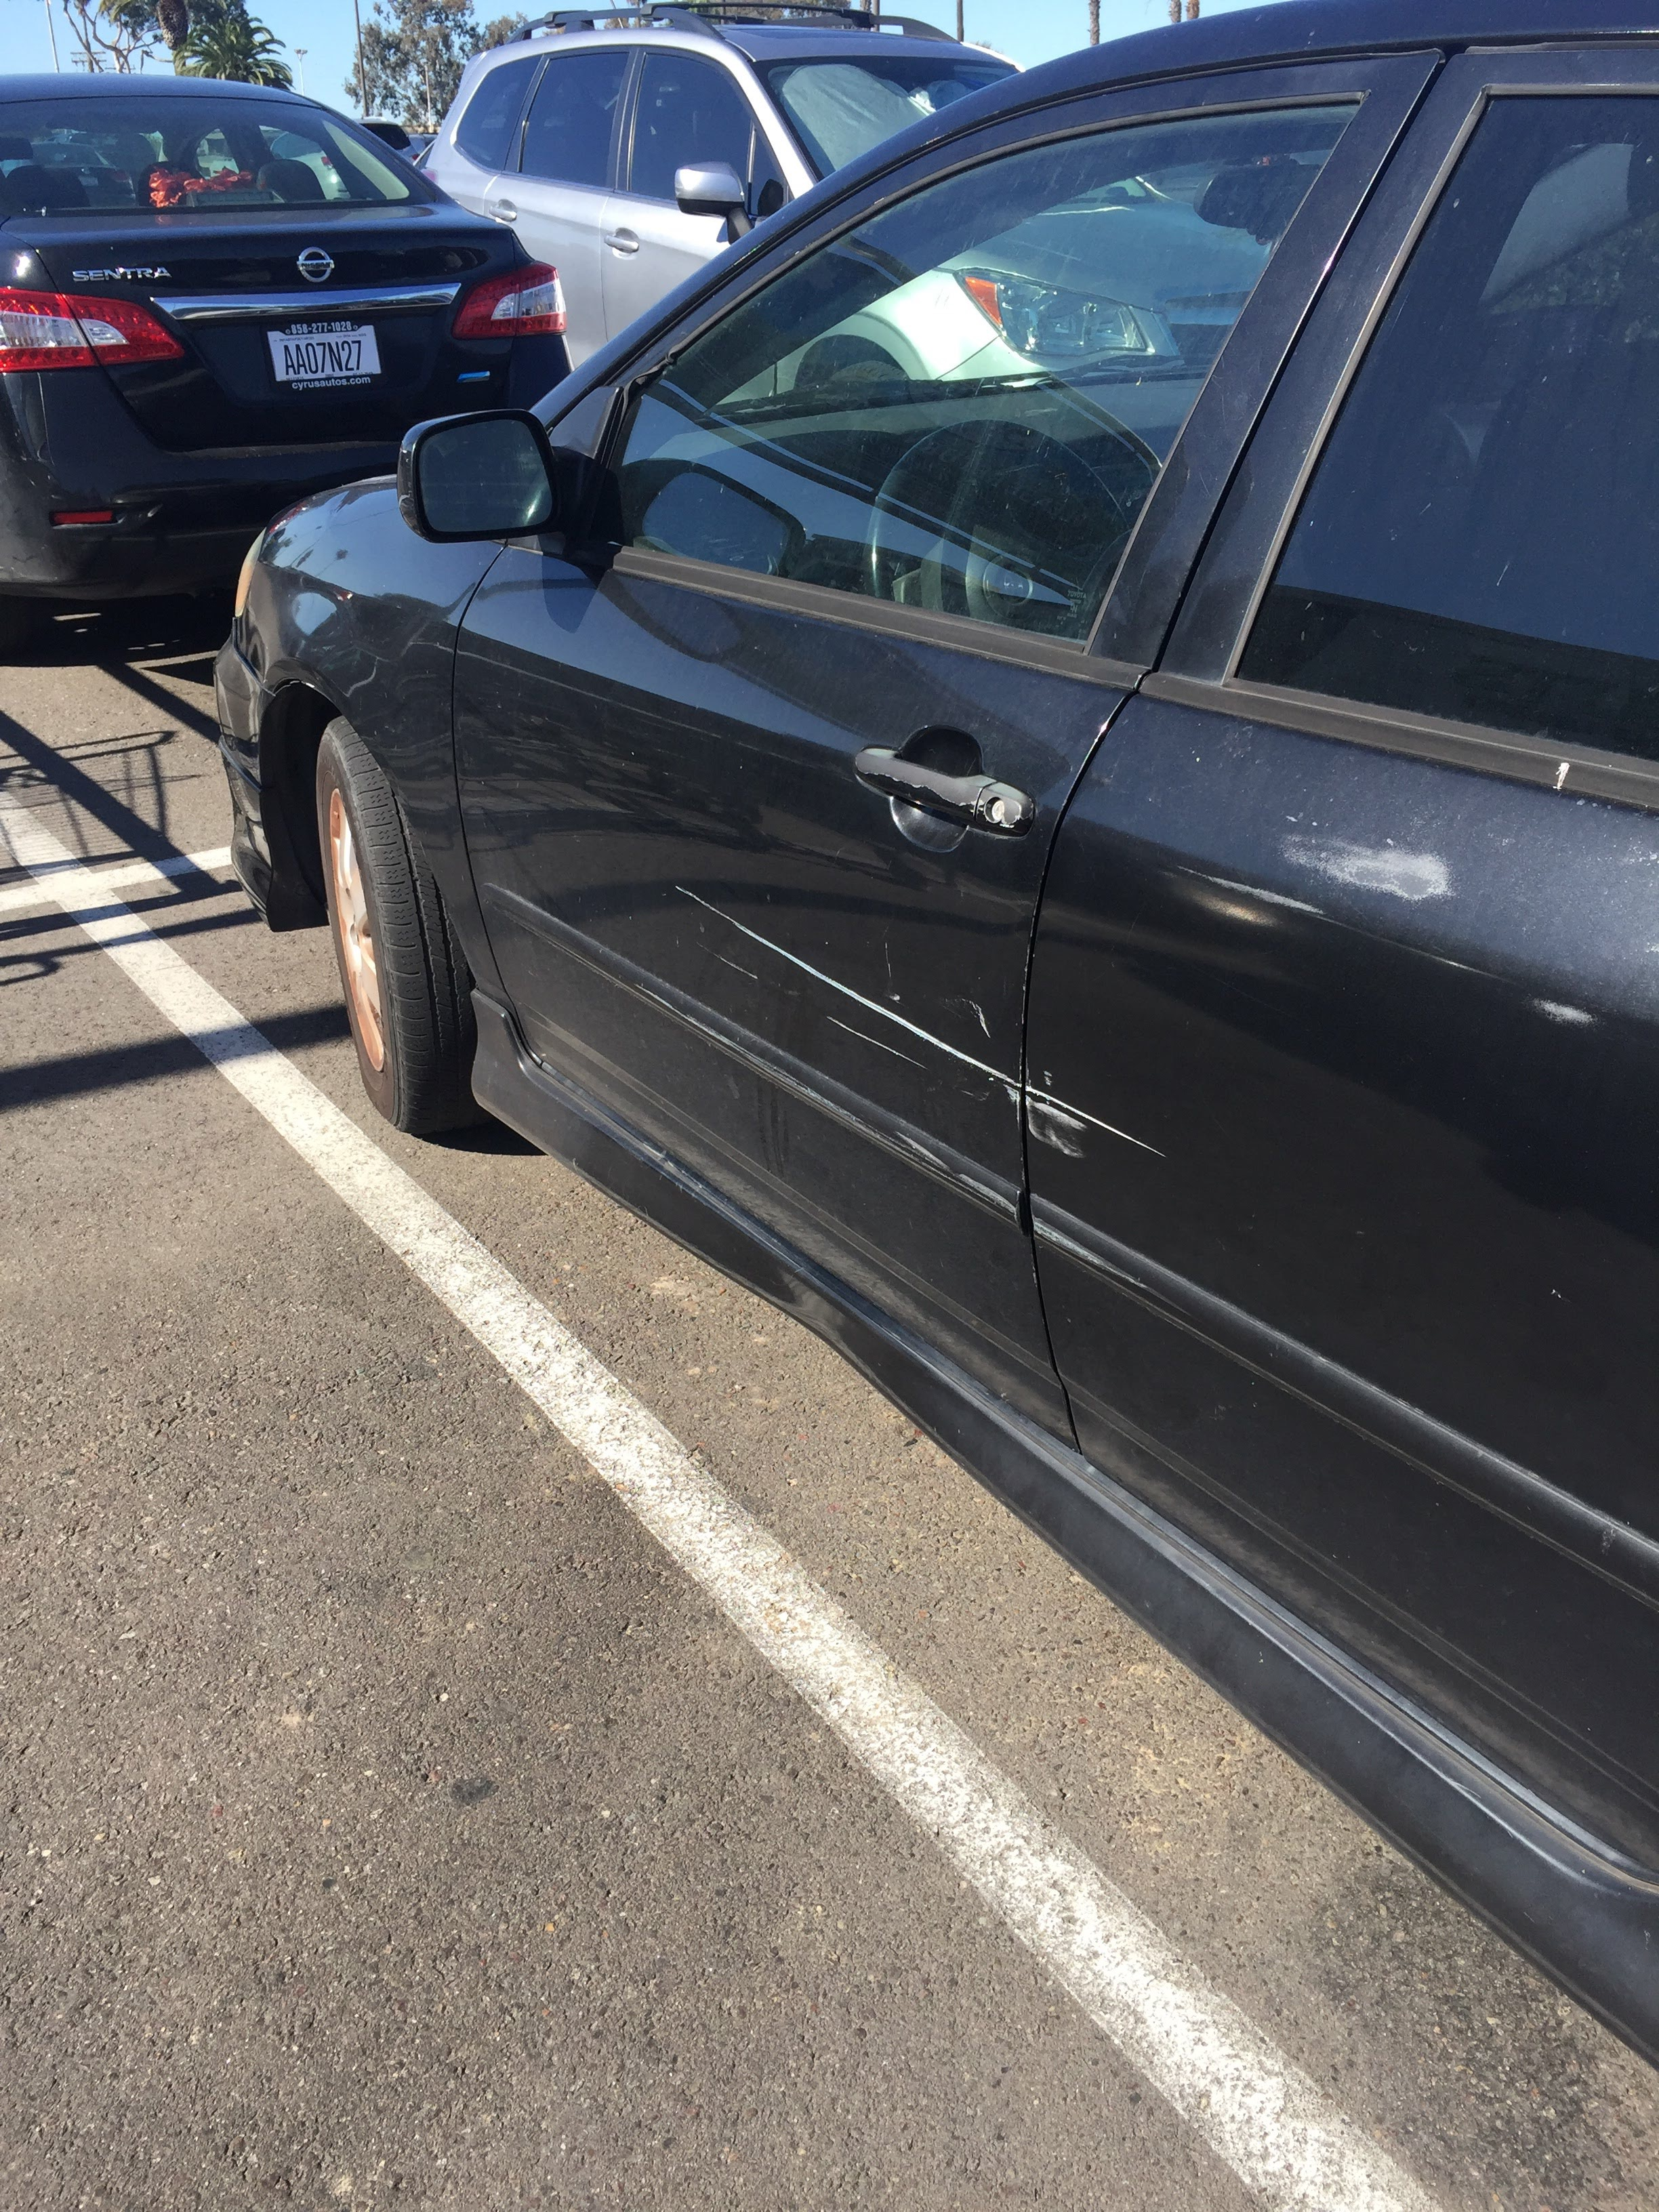 Hit and run at Sprouts.